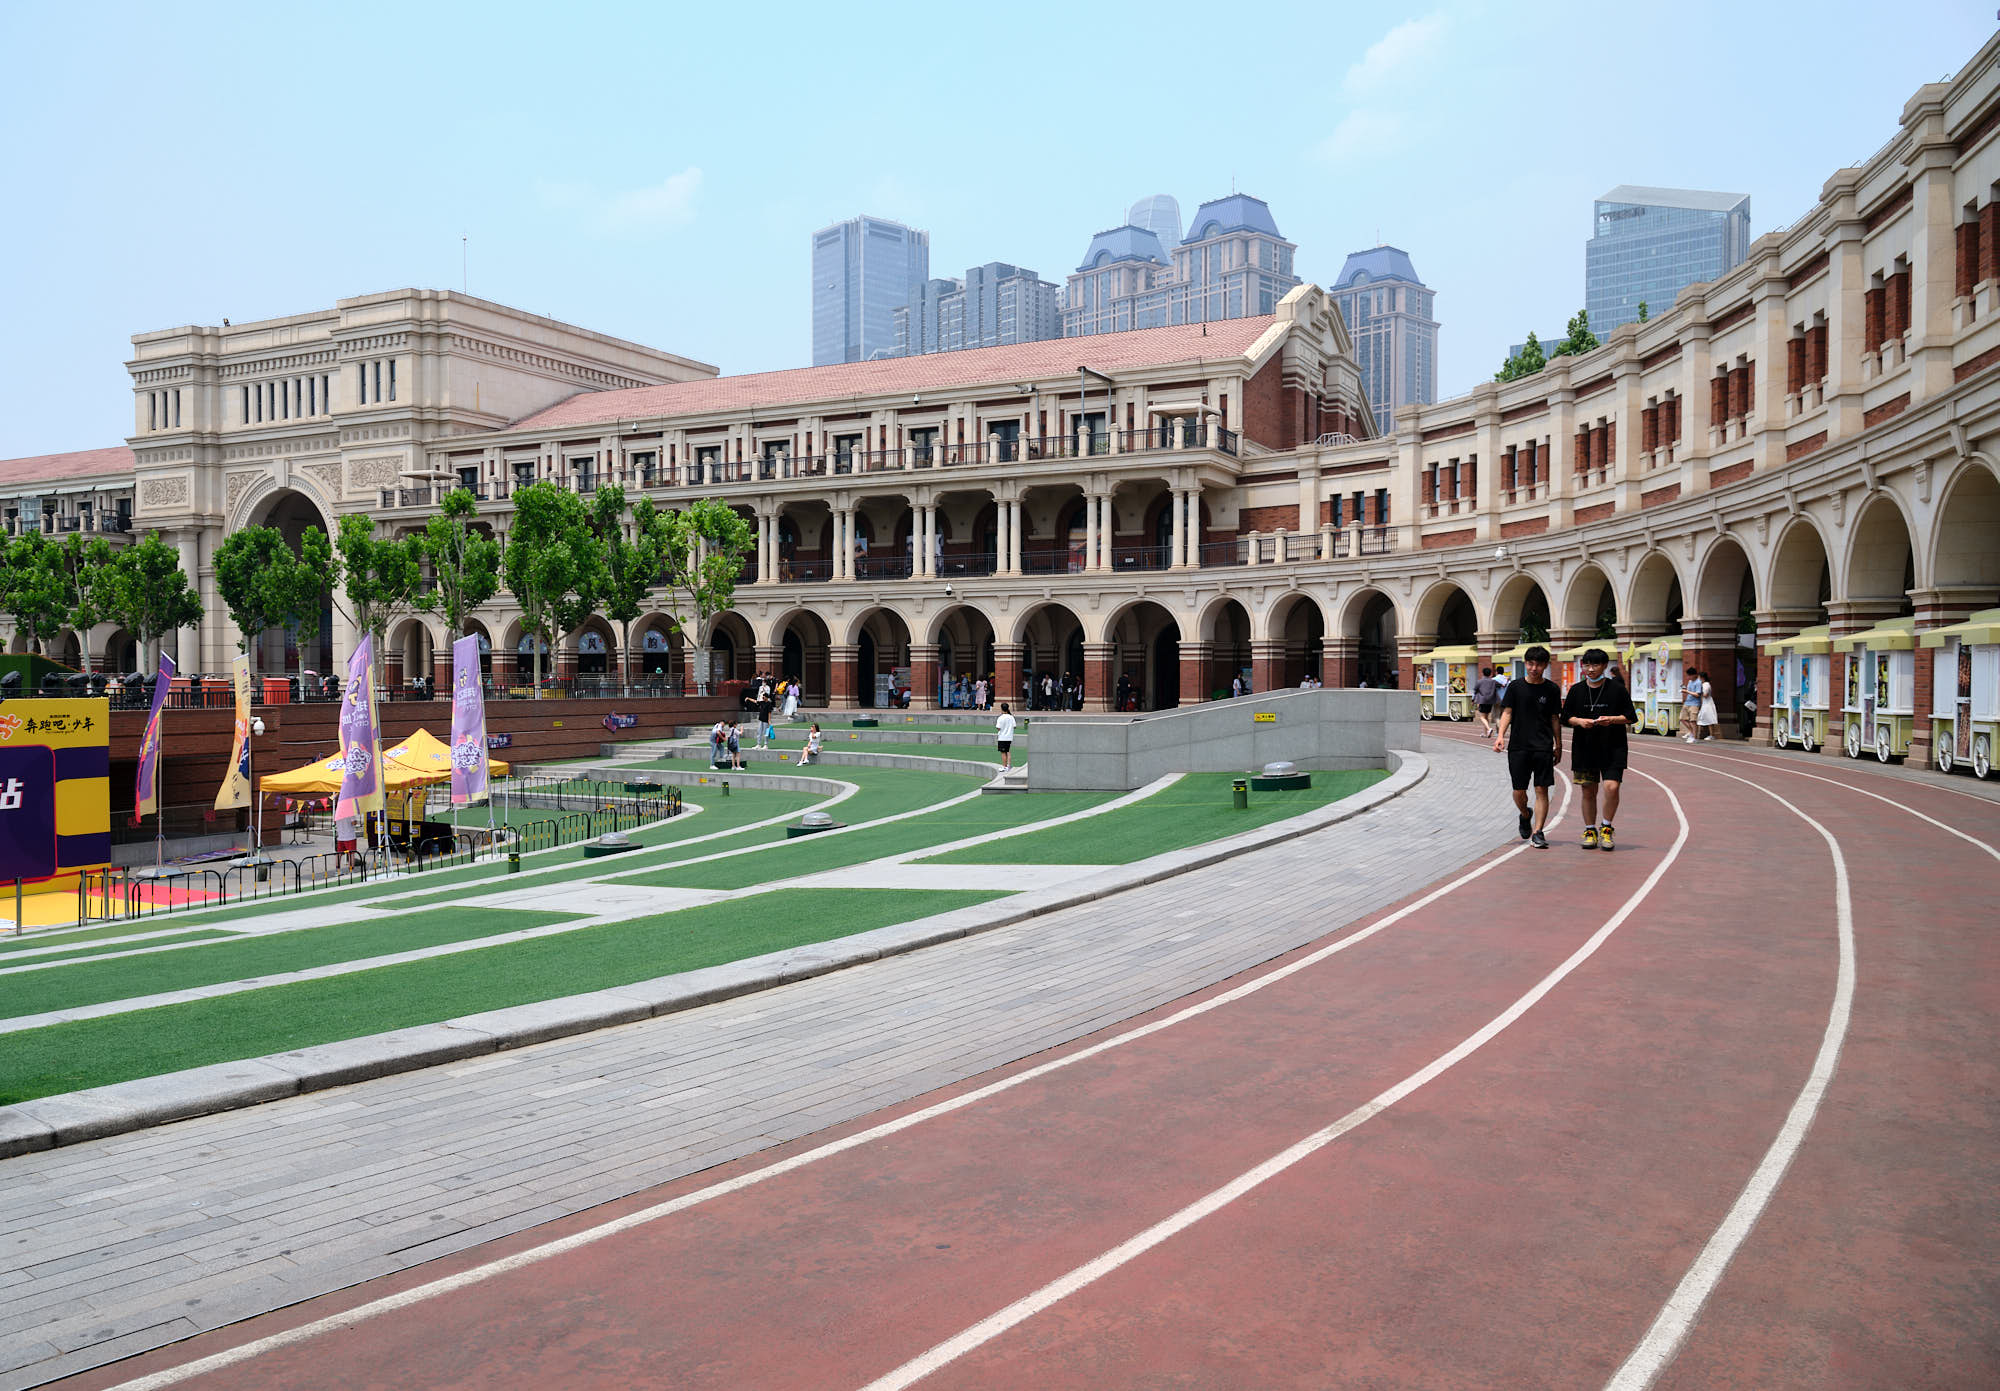 Outdoor running track in Tianjin, China